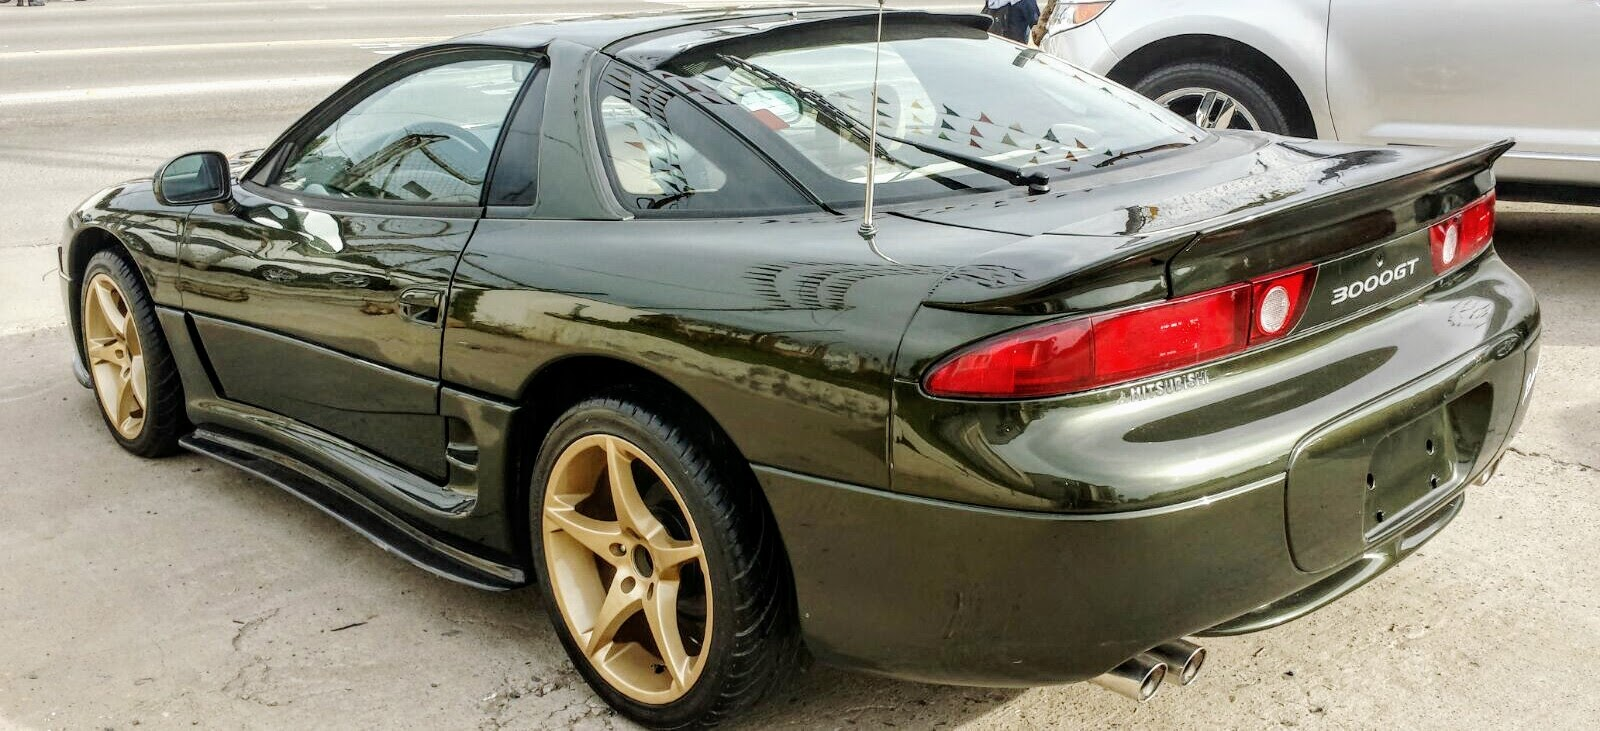 Retro specmitsubishi 3000gt if you have any questions or you would like to order email us at retrospecrbongmail thanks publicscrutiny Choice Image